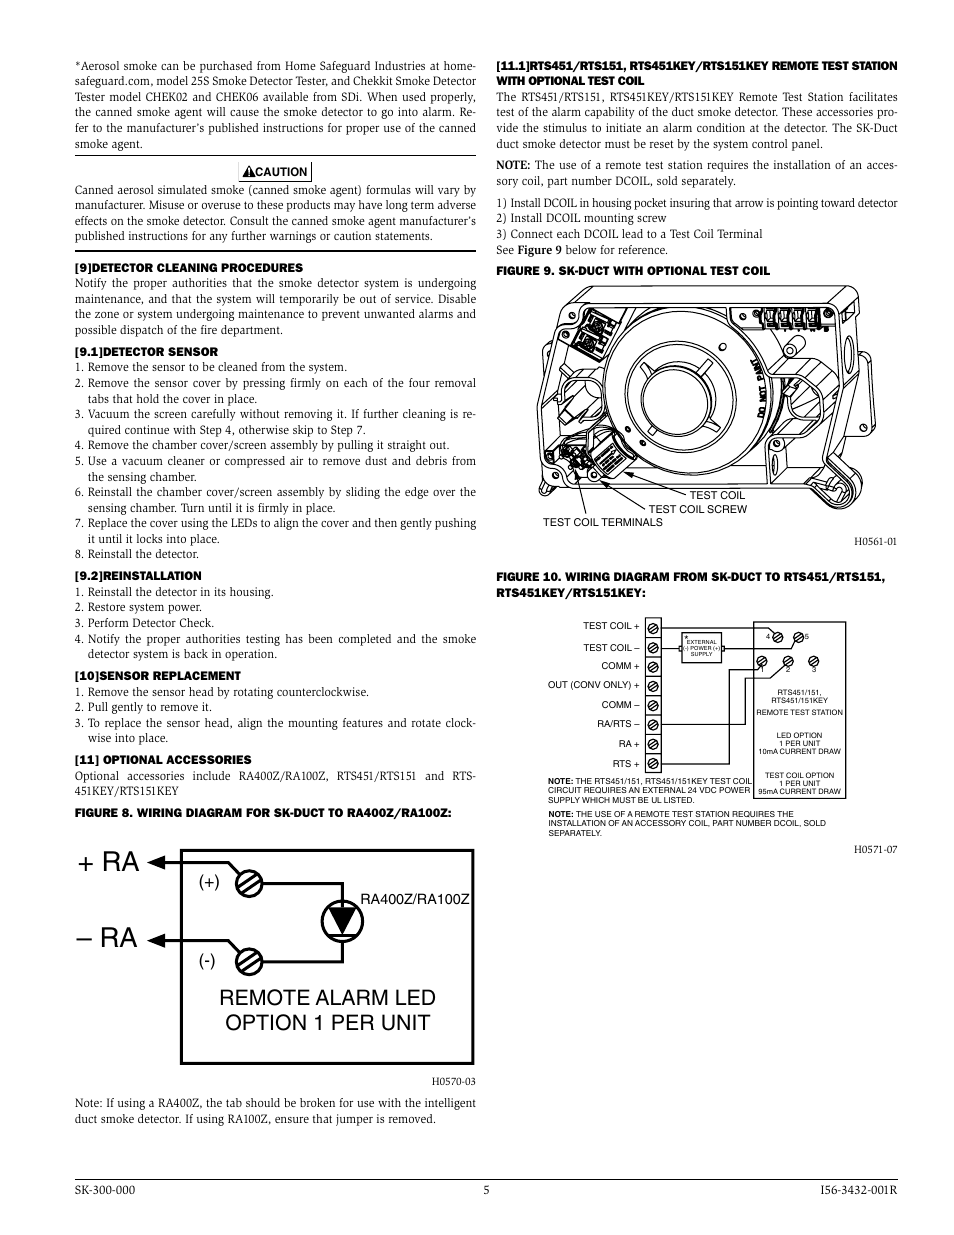 Wiring Diagram For Alarm Silence : Ra remote alarm led option per unit silentknight